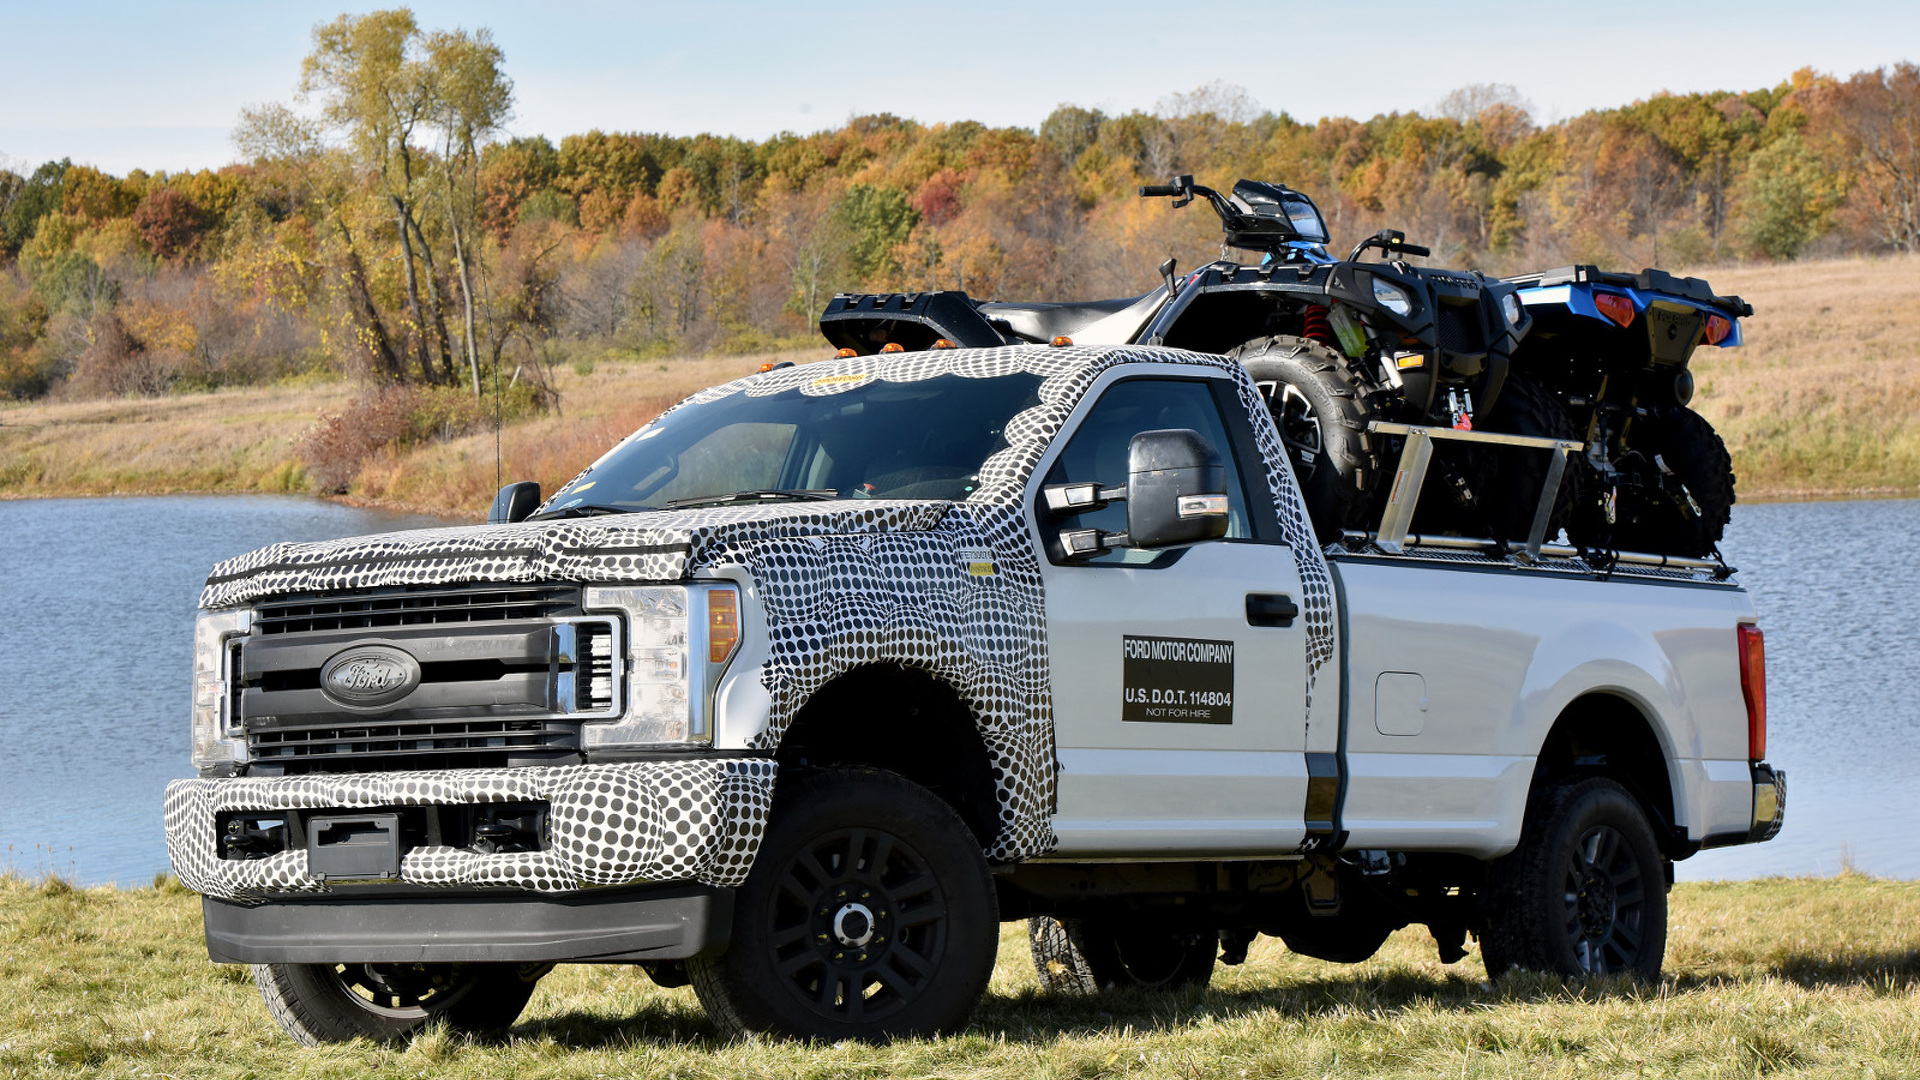 2017 Ford F-Series Super Duty was tested to extremes [video]